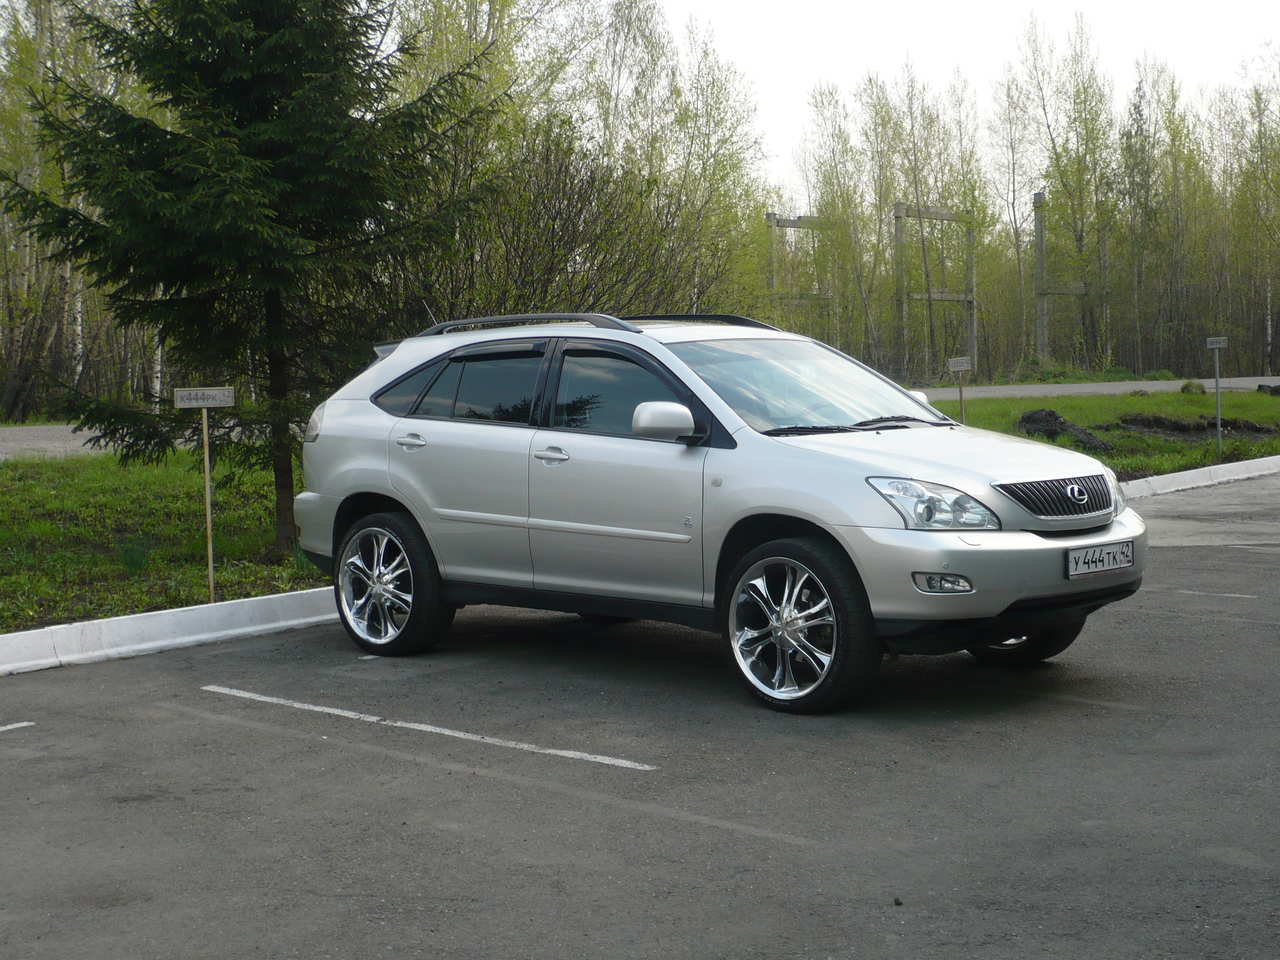 Lexus rx 300 2004 technical specifications interior and exterior photo lexus rx 300 2004 photo 1 sciox Gallery